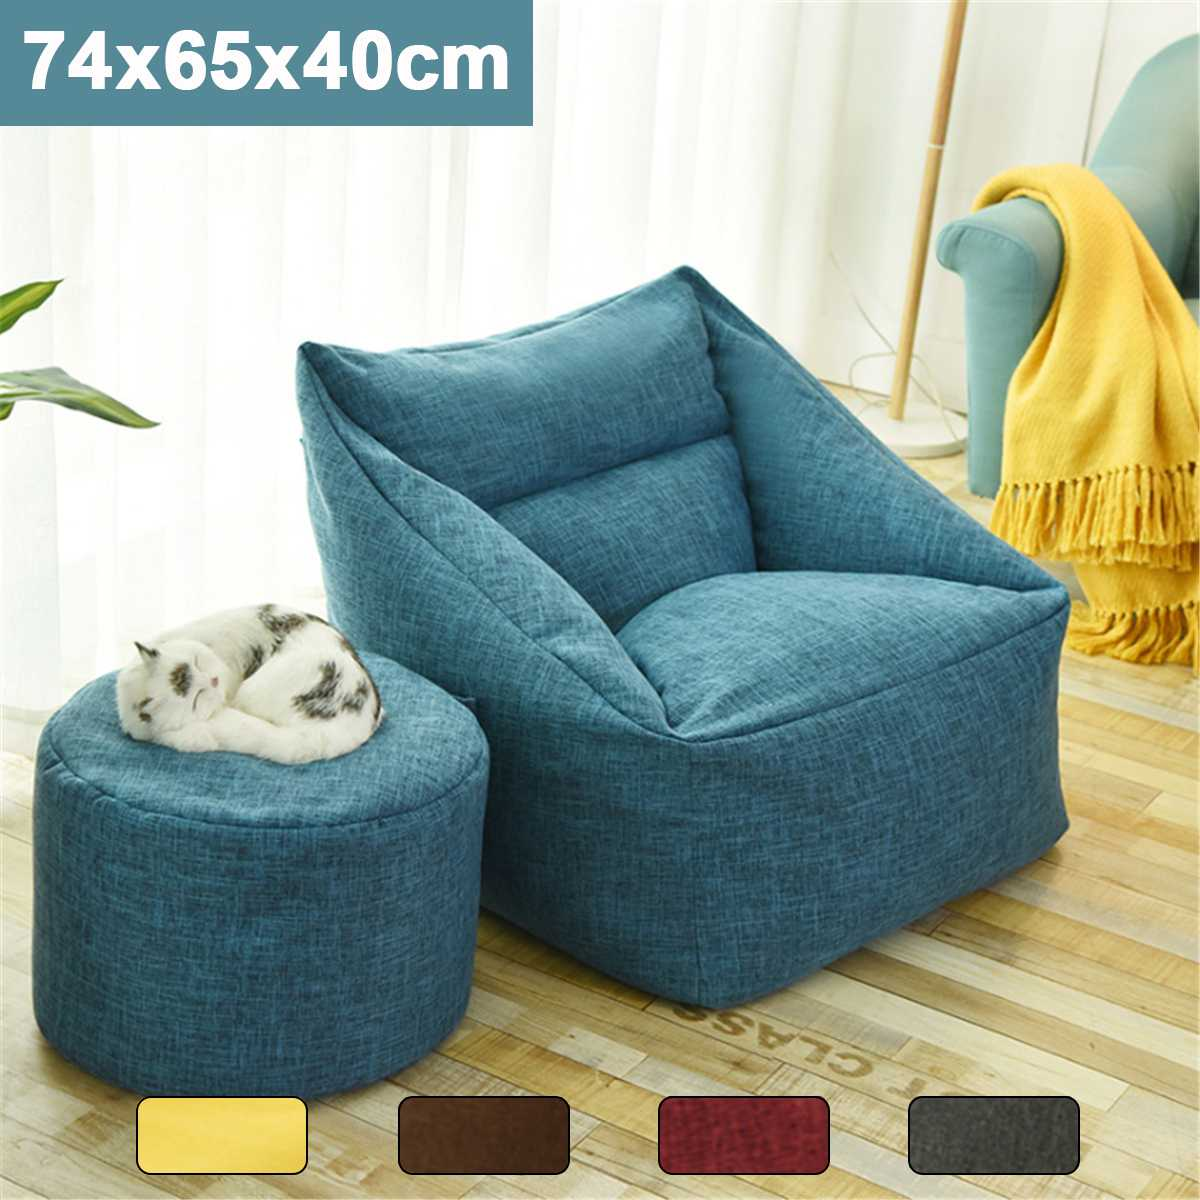 Surprising Premium 2019 Convertible Bean Bag Chairs Waterproof Bean Bag Sofa Lazy Big Bean Bags Pabps2019 Chair Design Images Pabps2019Com